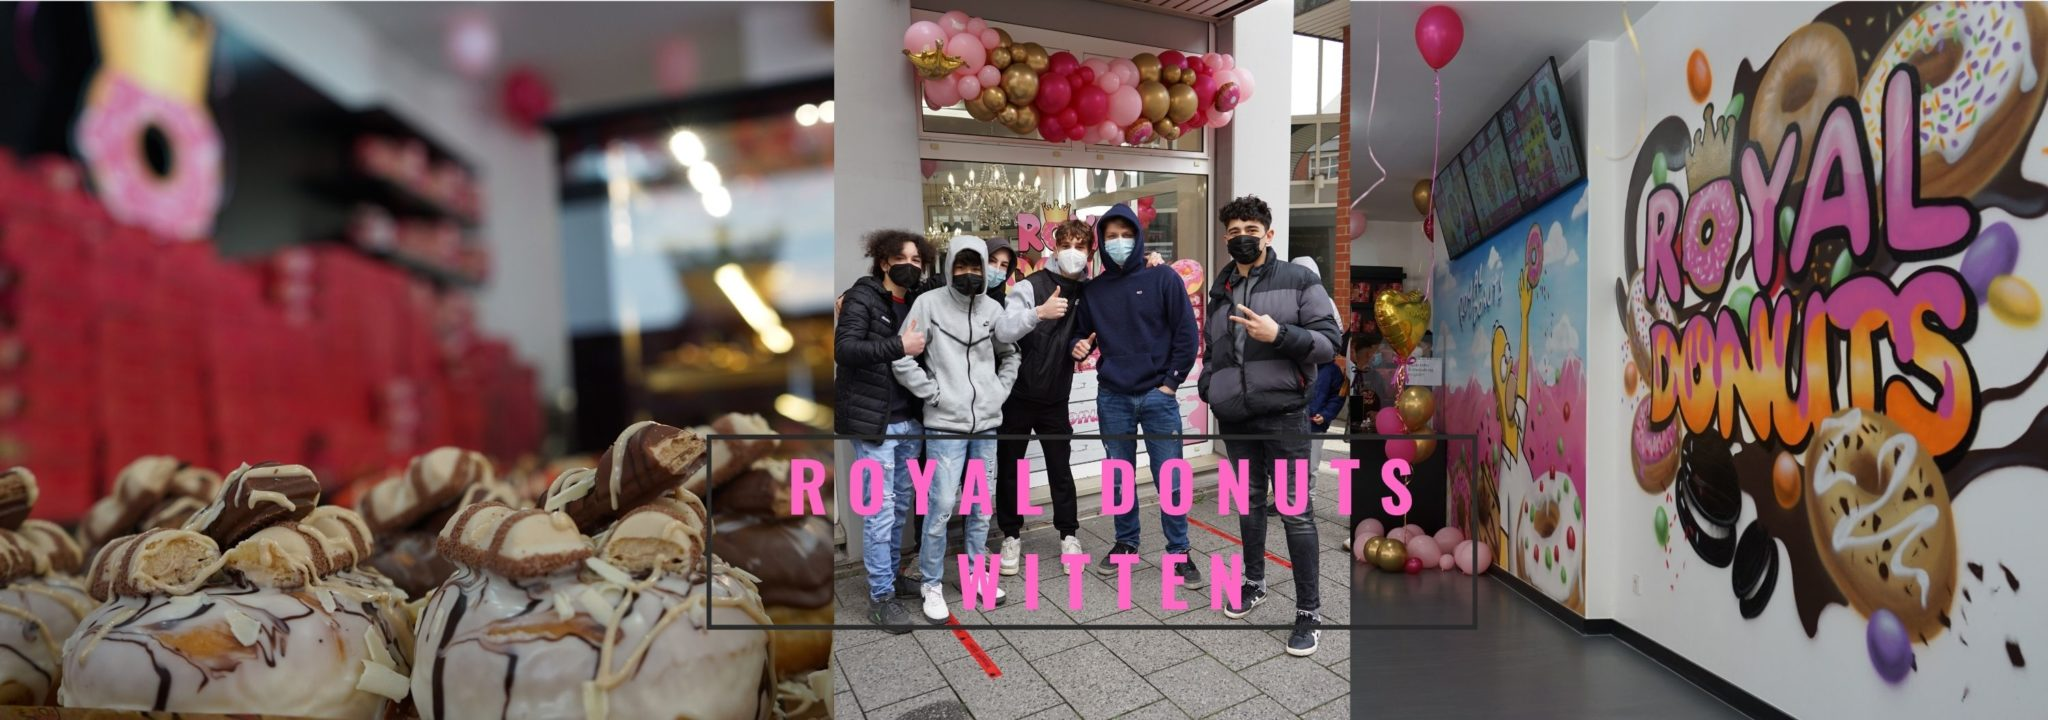 Royal Donuts Witten